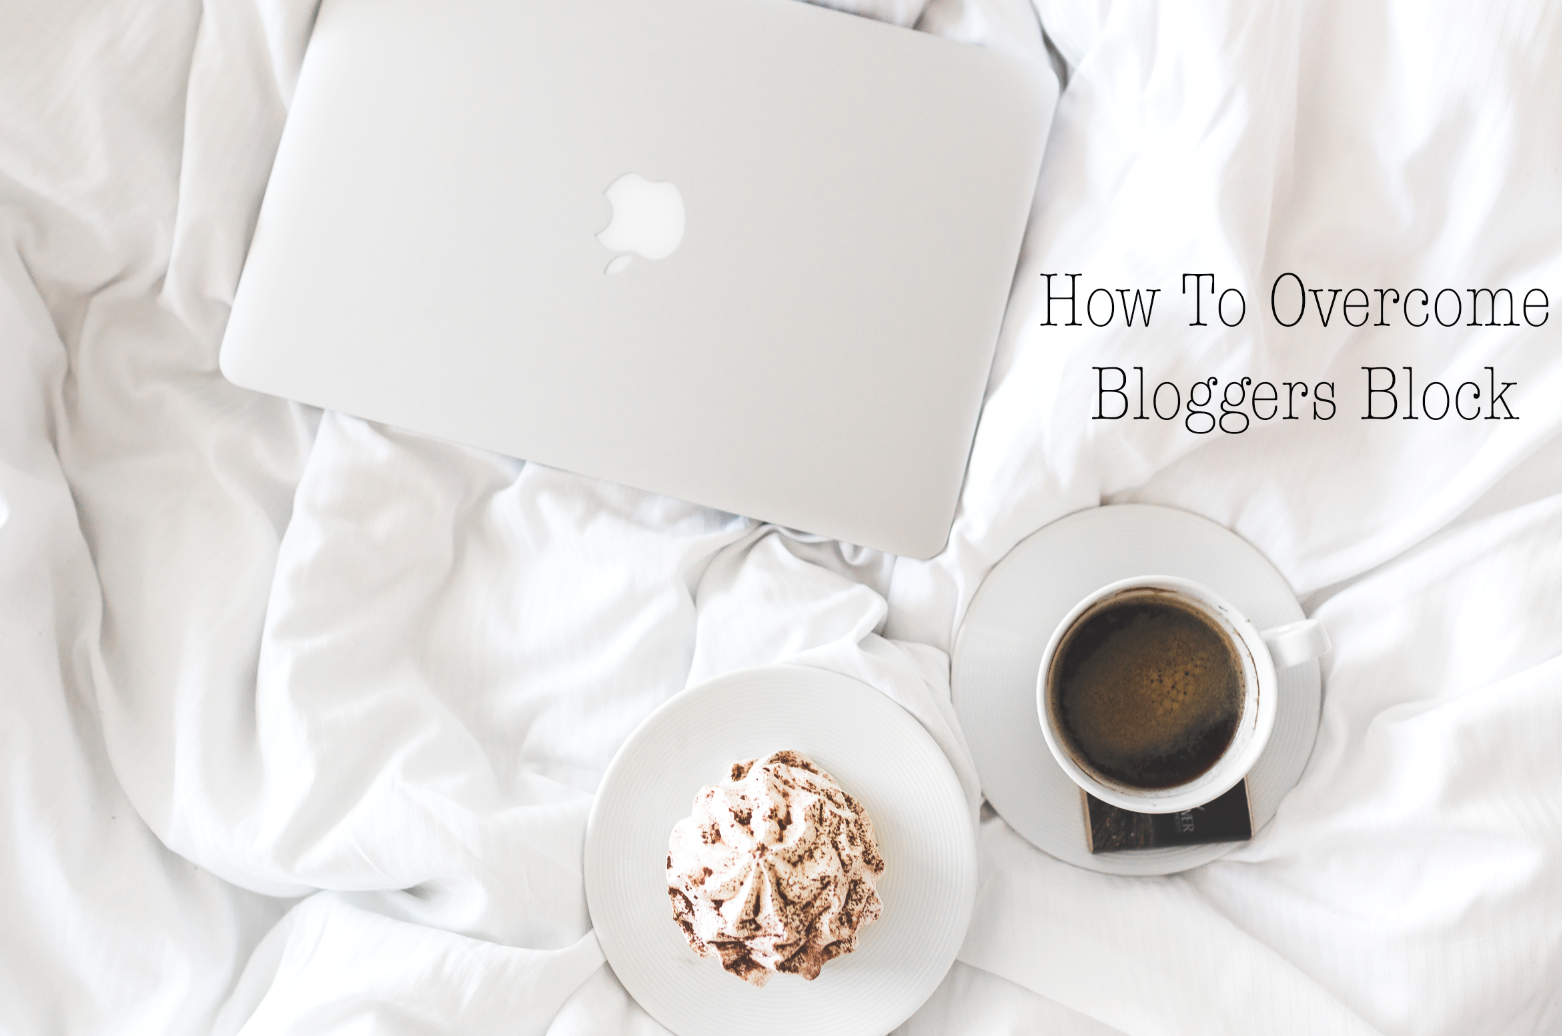 HOW TO OVERCOME BLOGGERS BLOCK